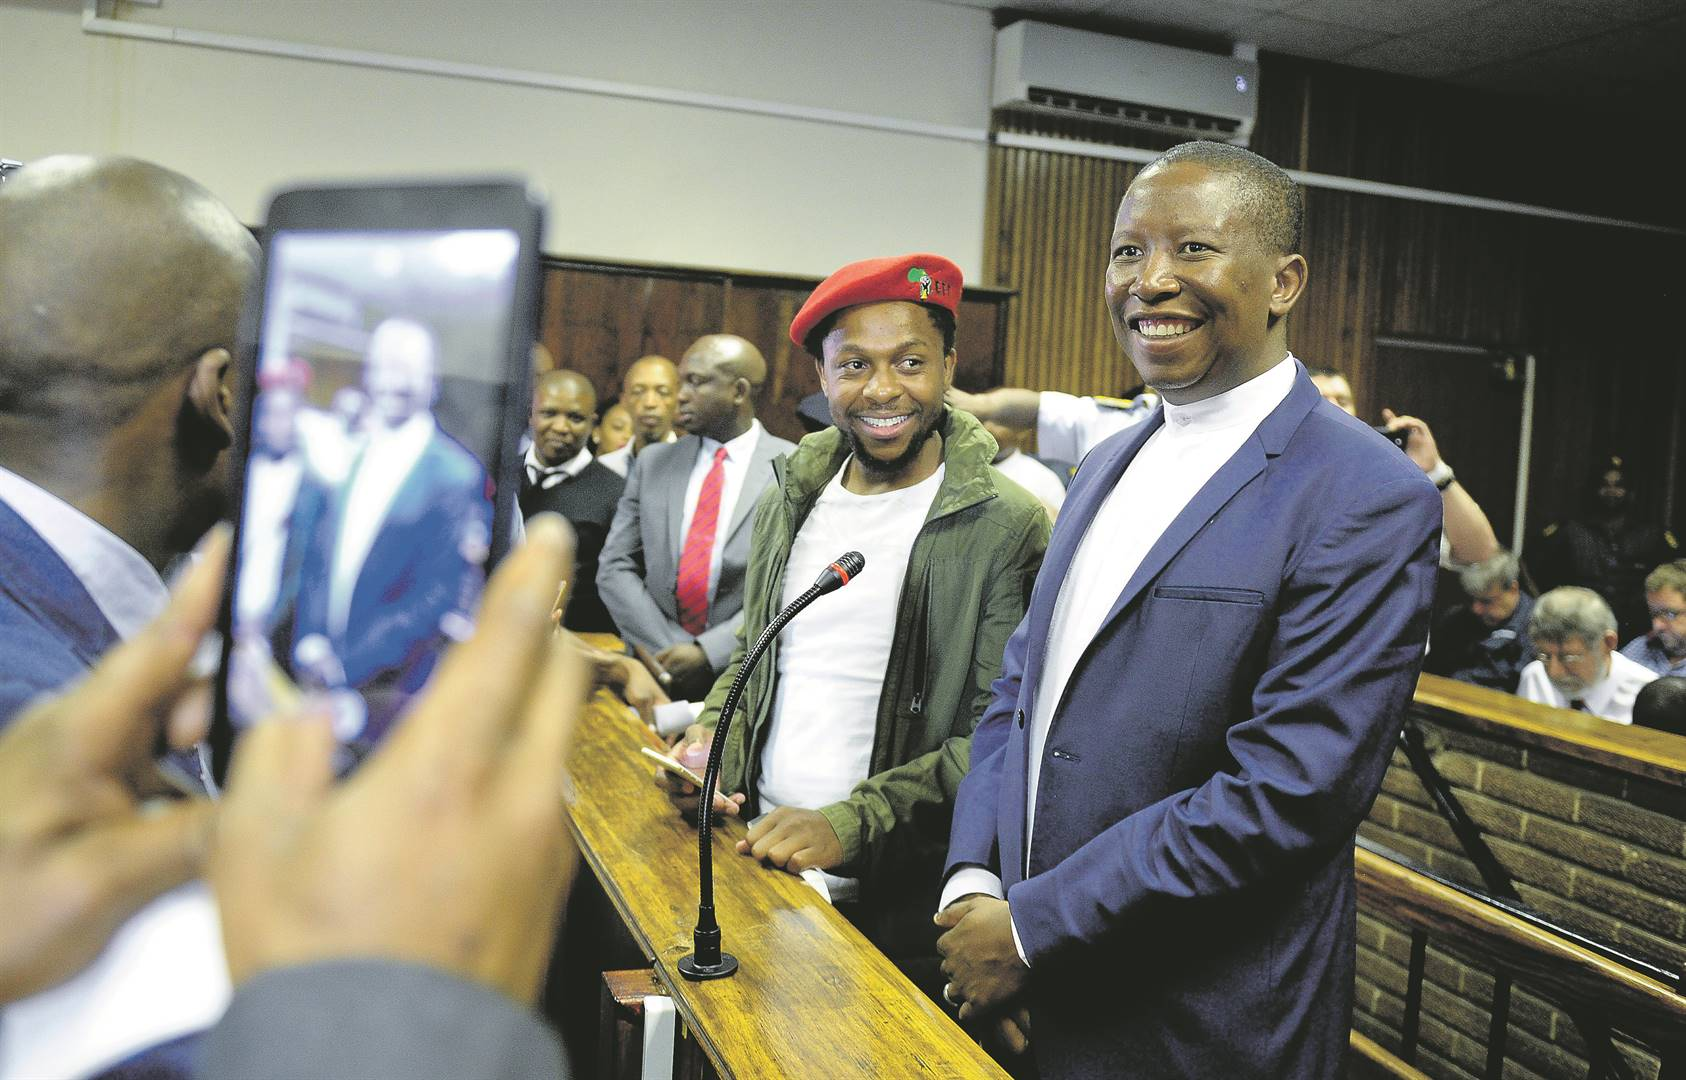 The Human Rights Commission appears not to have considered that Julius Malema is a politician with influence over his supporters. It is arguable that politicians should be subject to greater scrutiny than ordinary members of an oppressed group making the same remarks Picture: Mlungisi Louw/ NUUS SENTRAAL